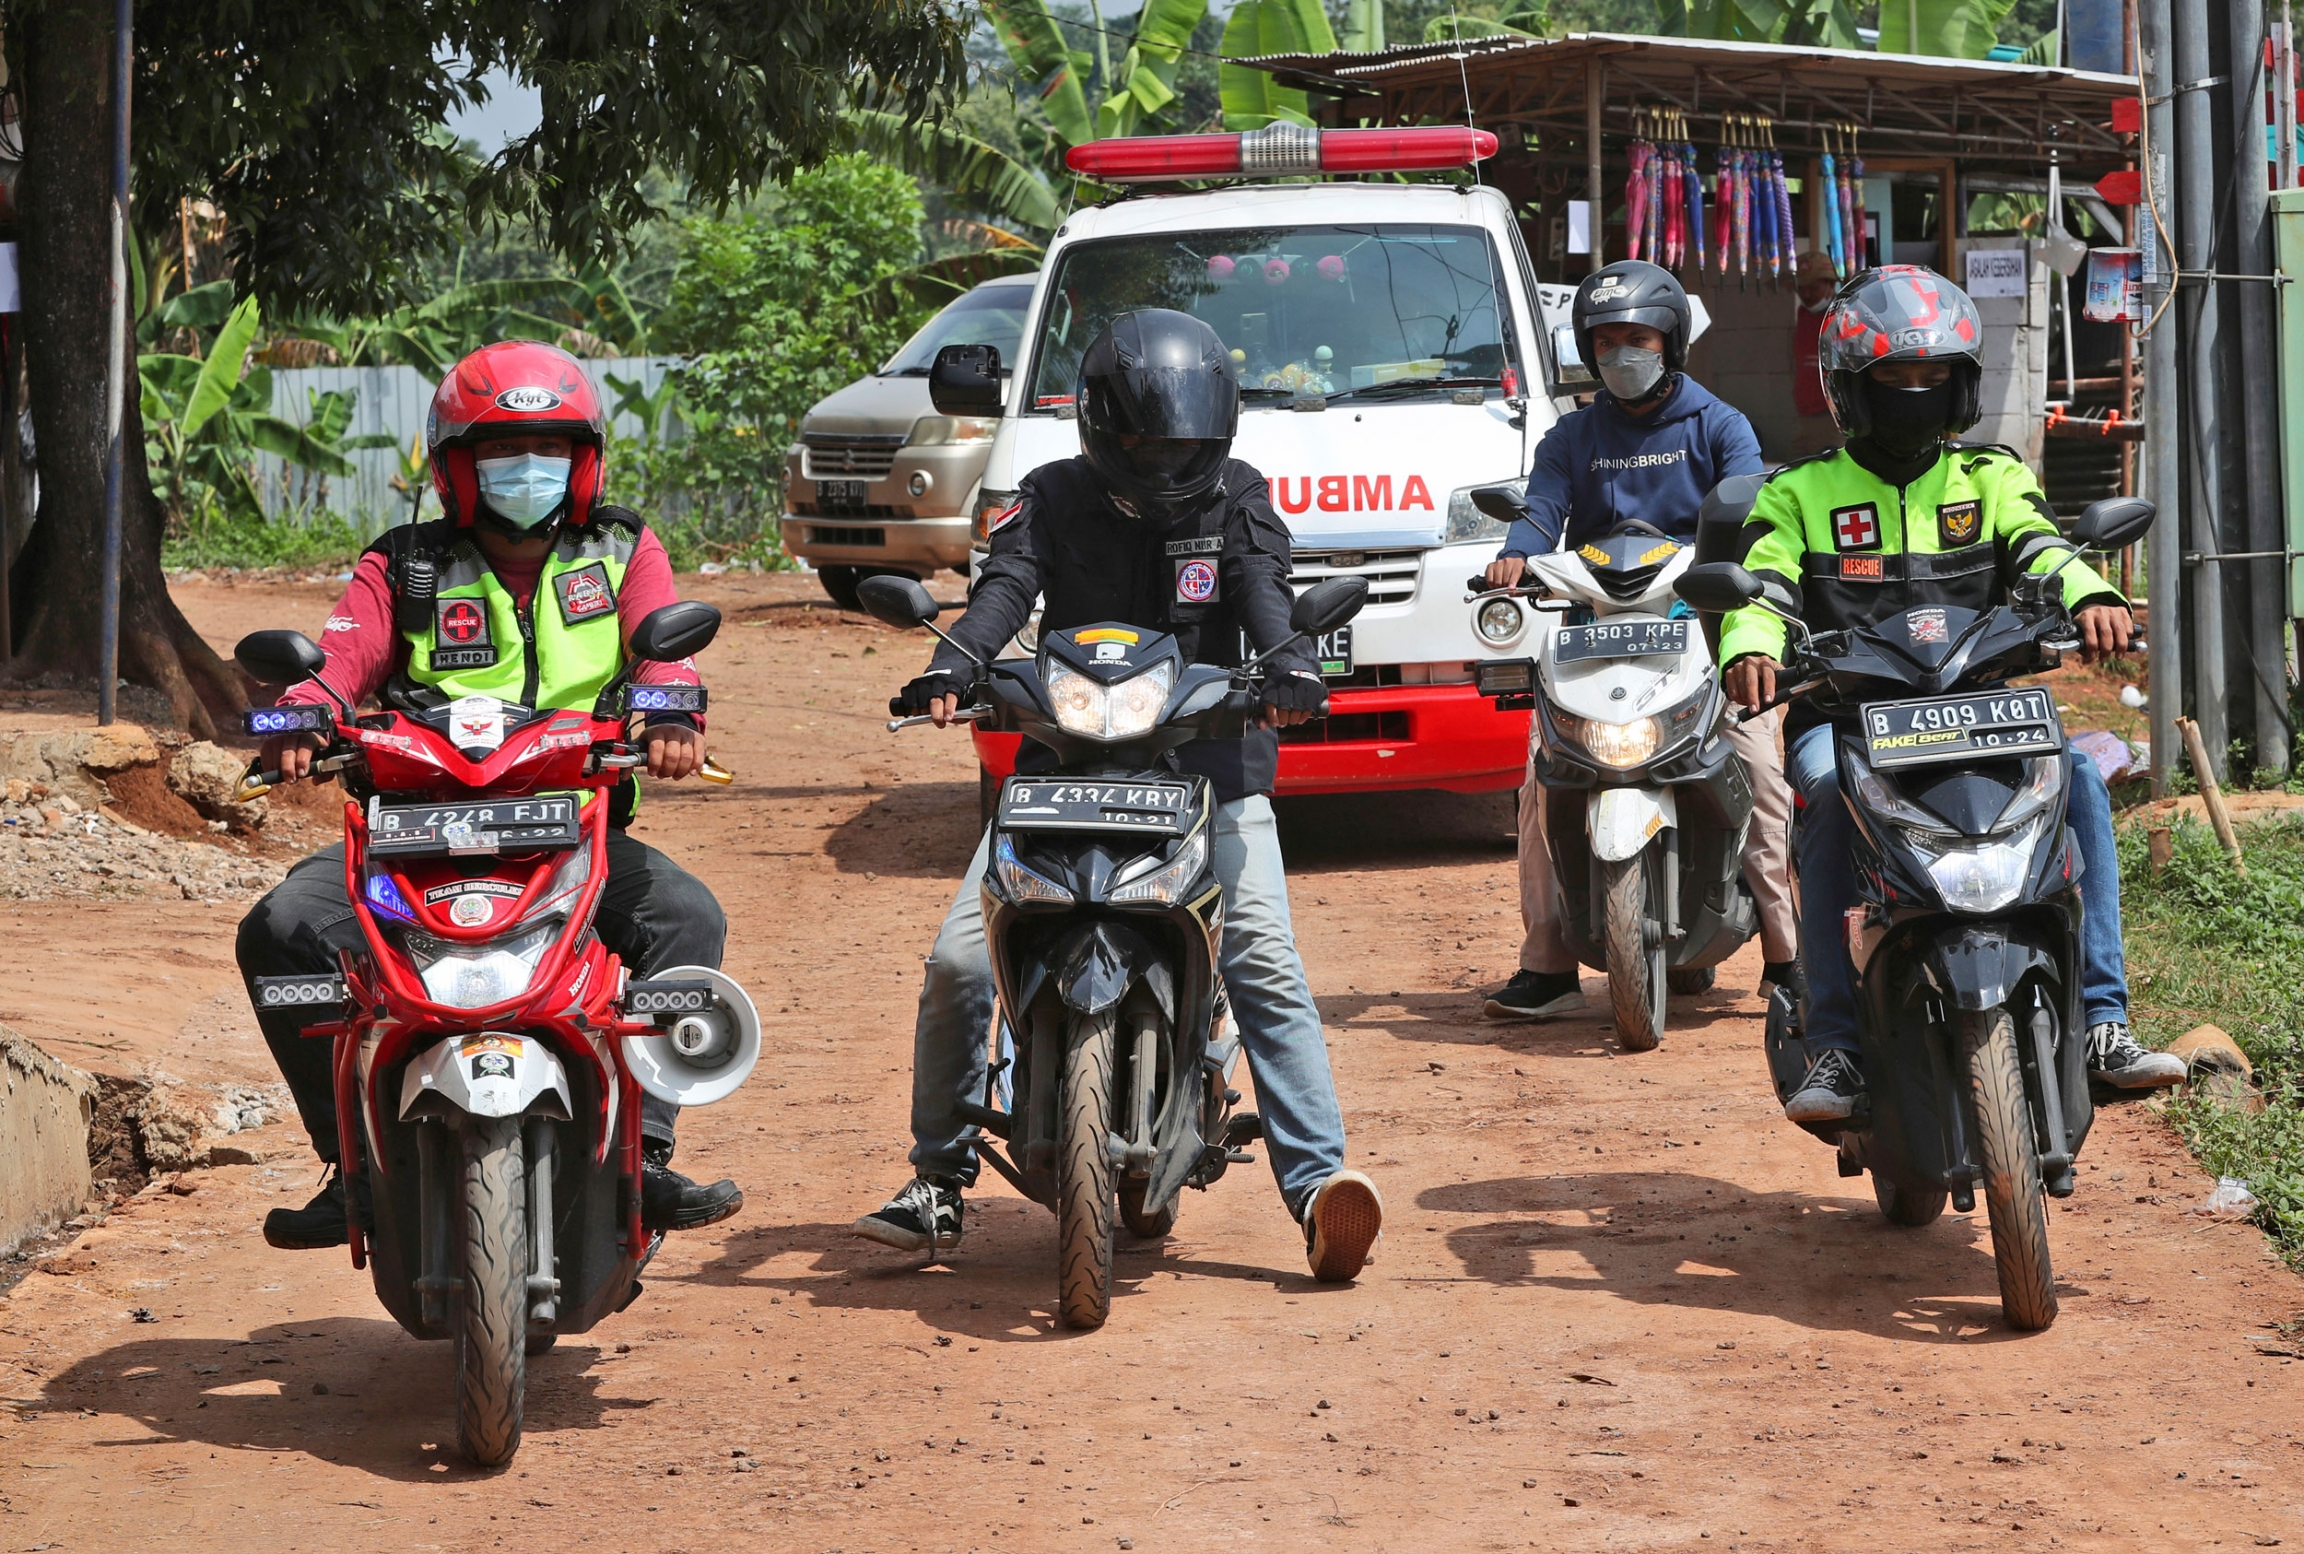 Four people on motorbikes are shown wearing helmets with an ambulance driving behind them.